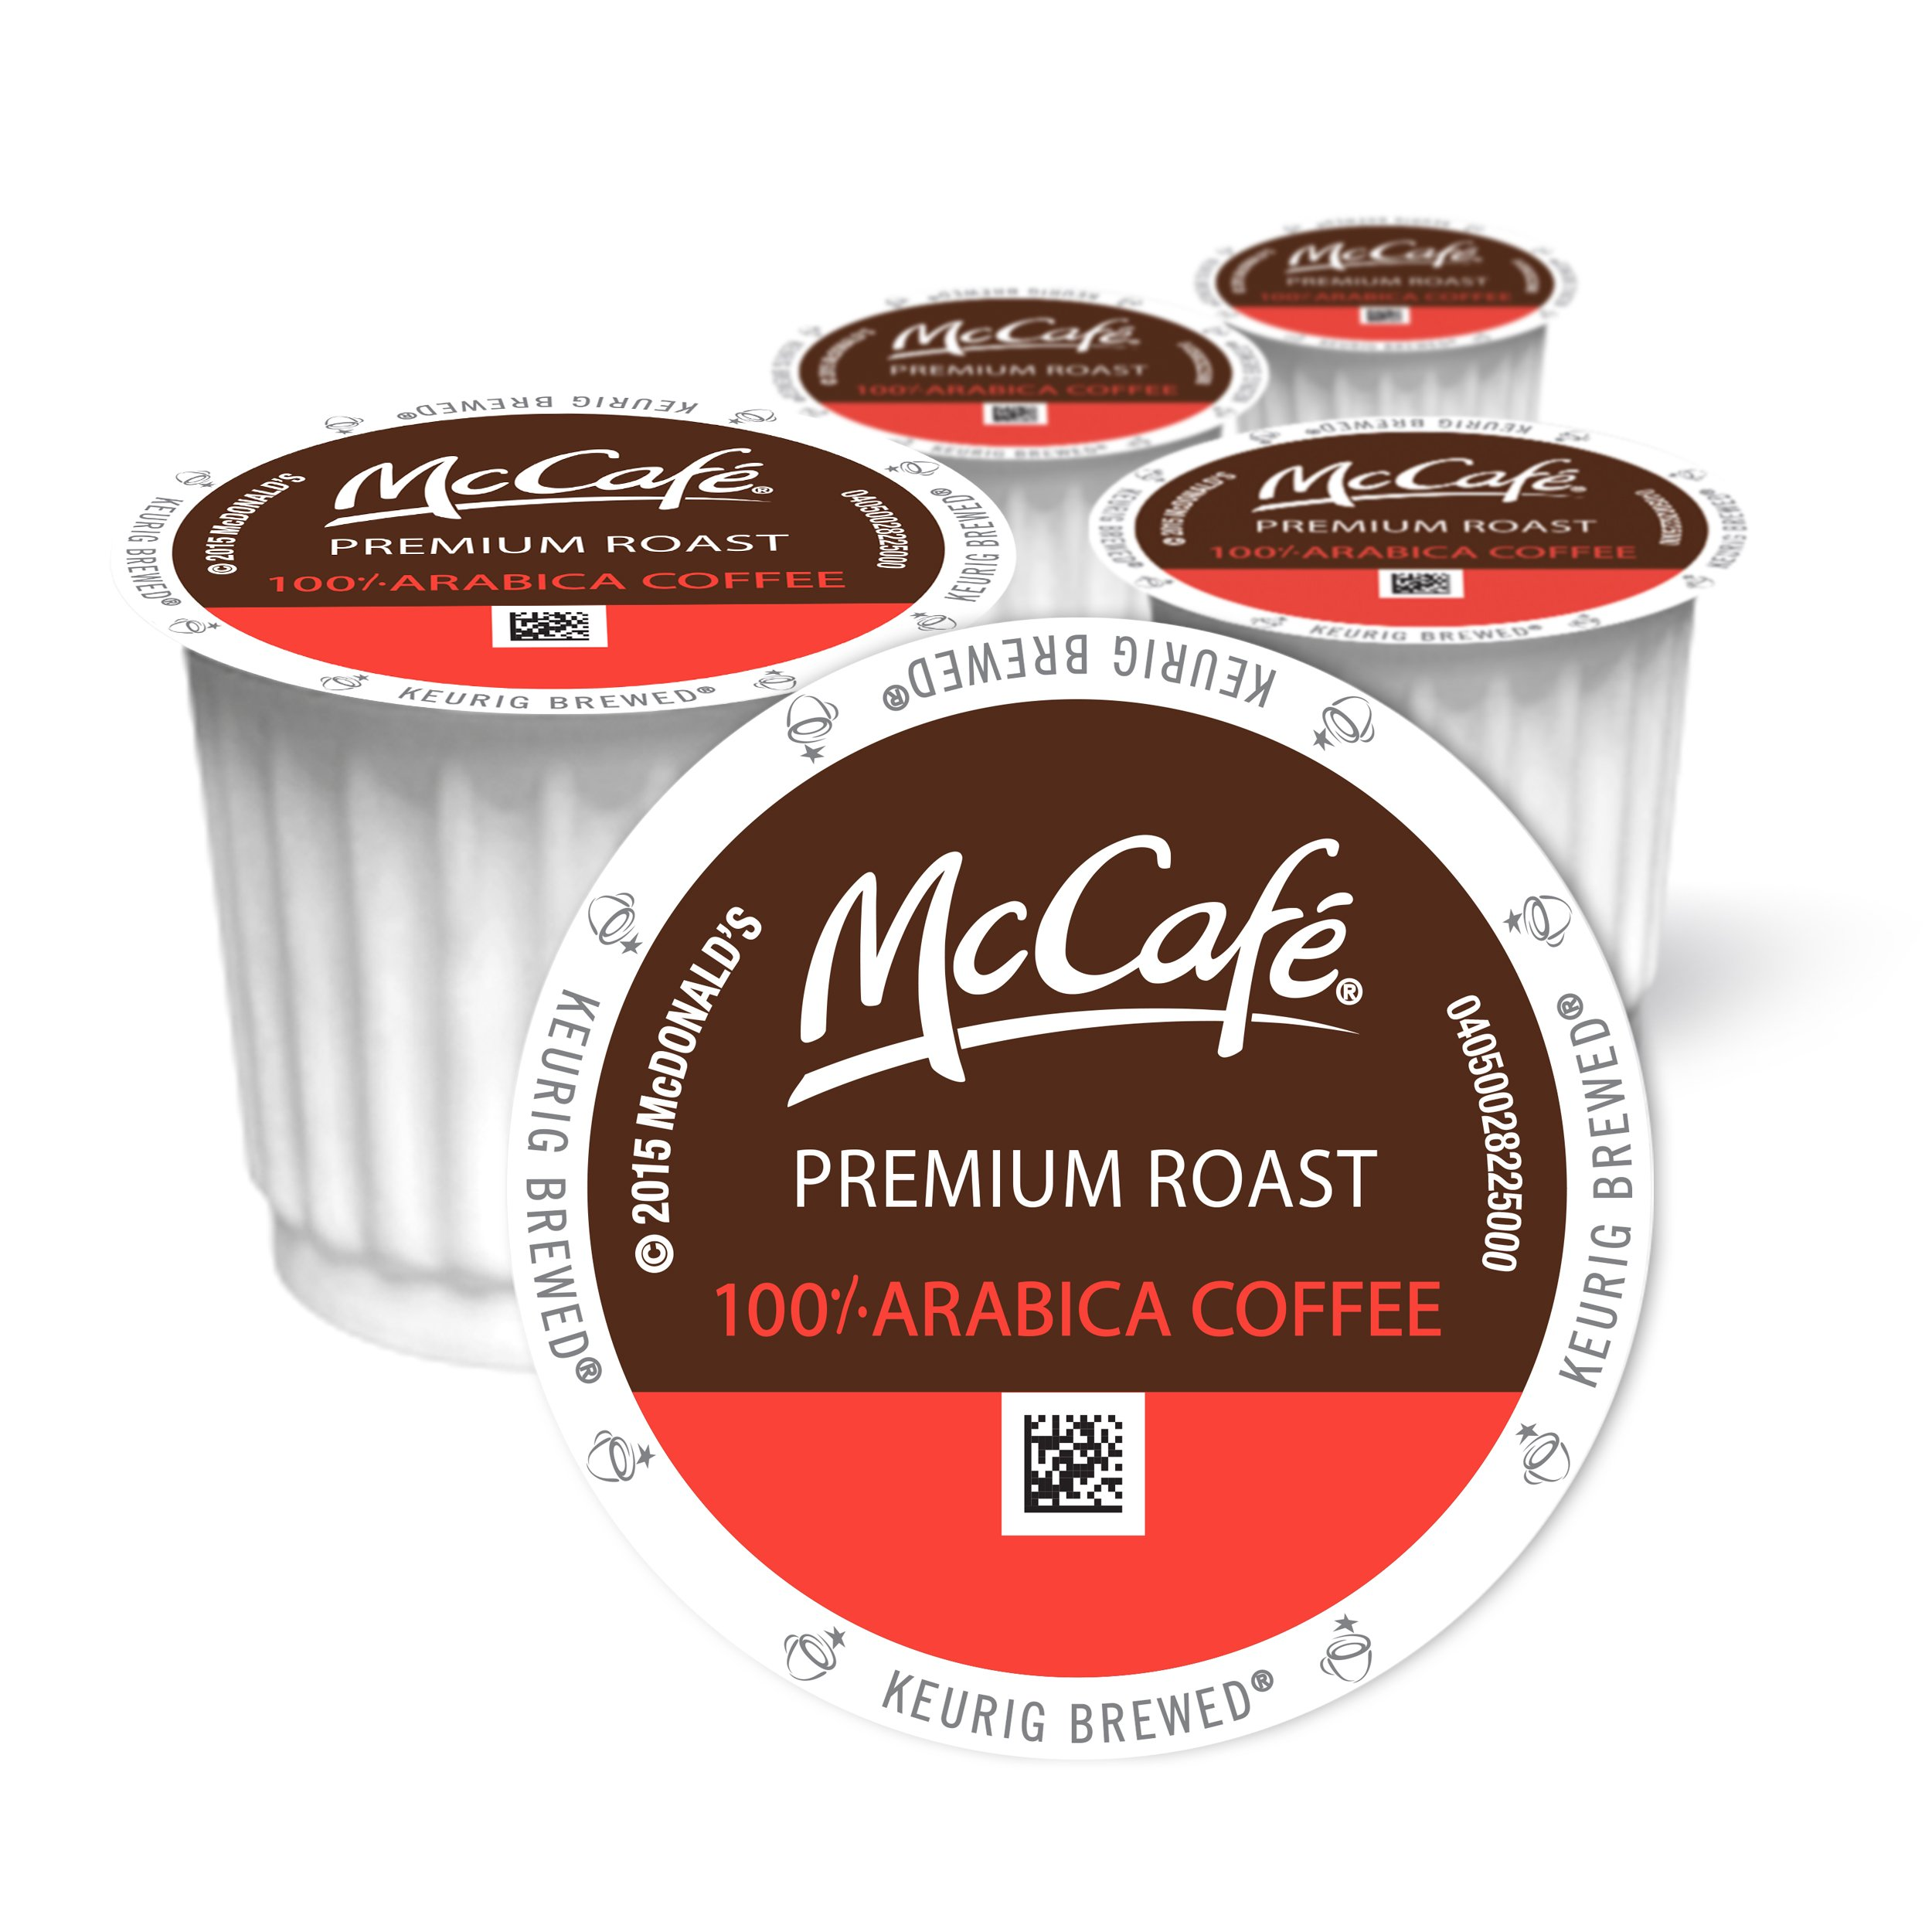 McCafe Premium Roast Coffee, K-CUP PODS, 100 Count by McCafe (Image #3)